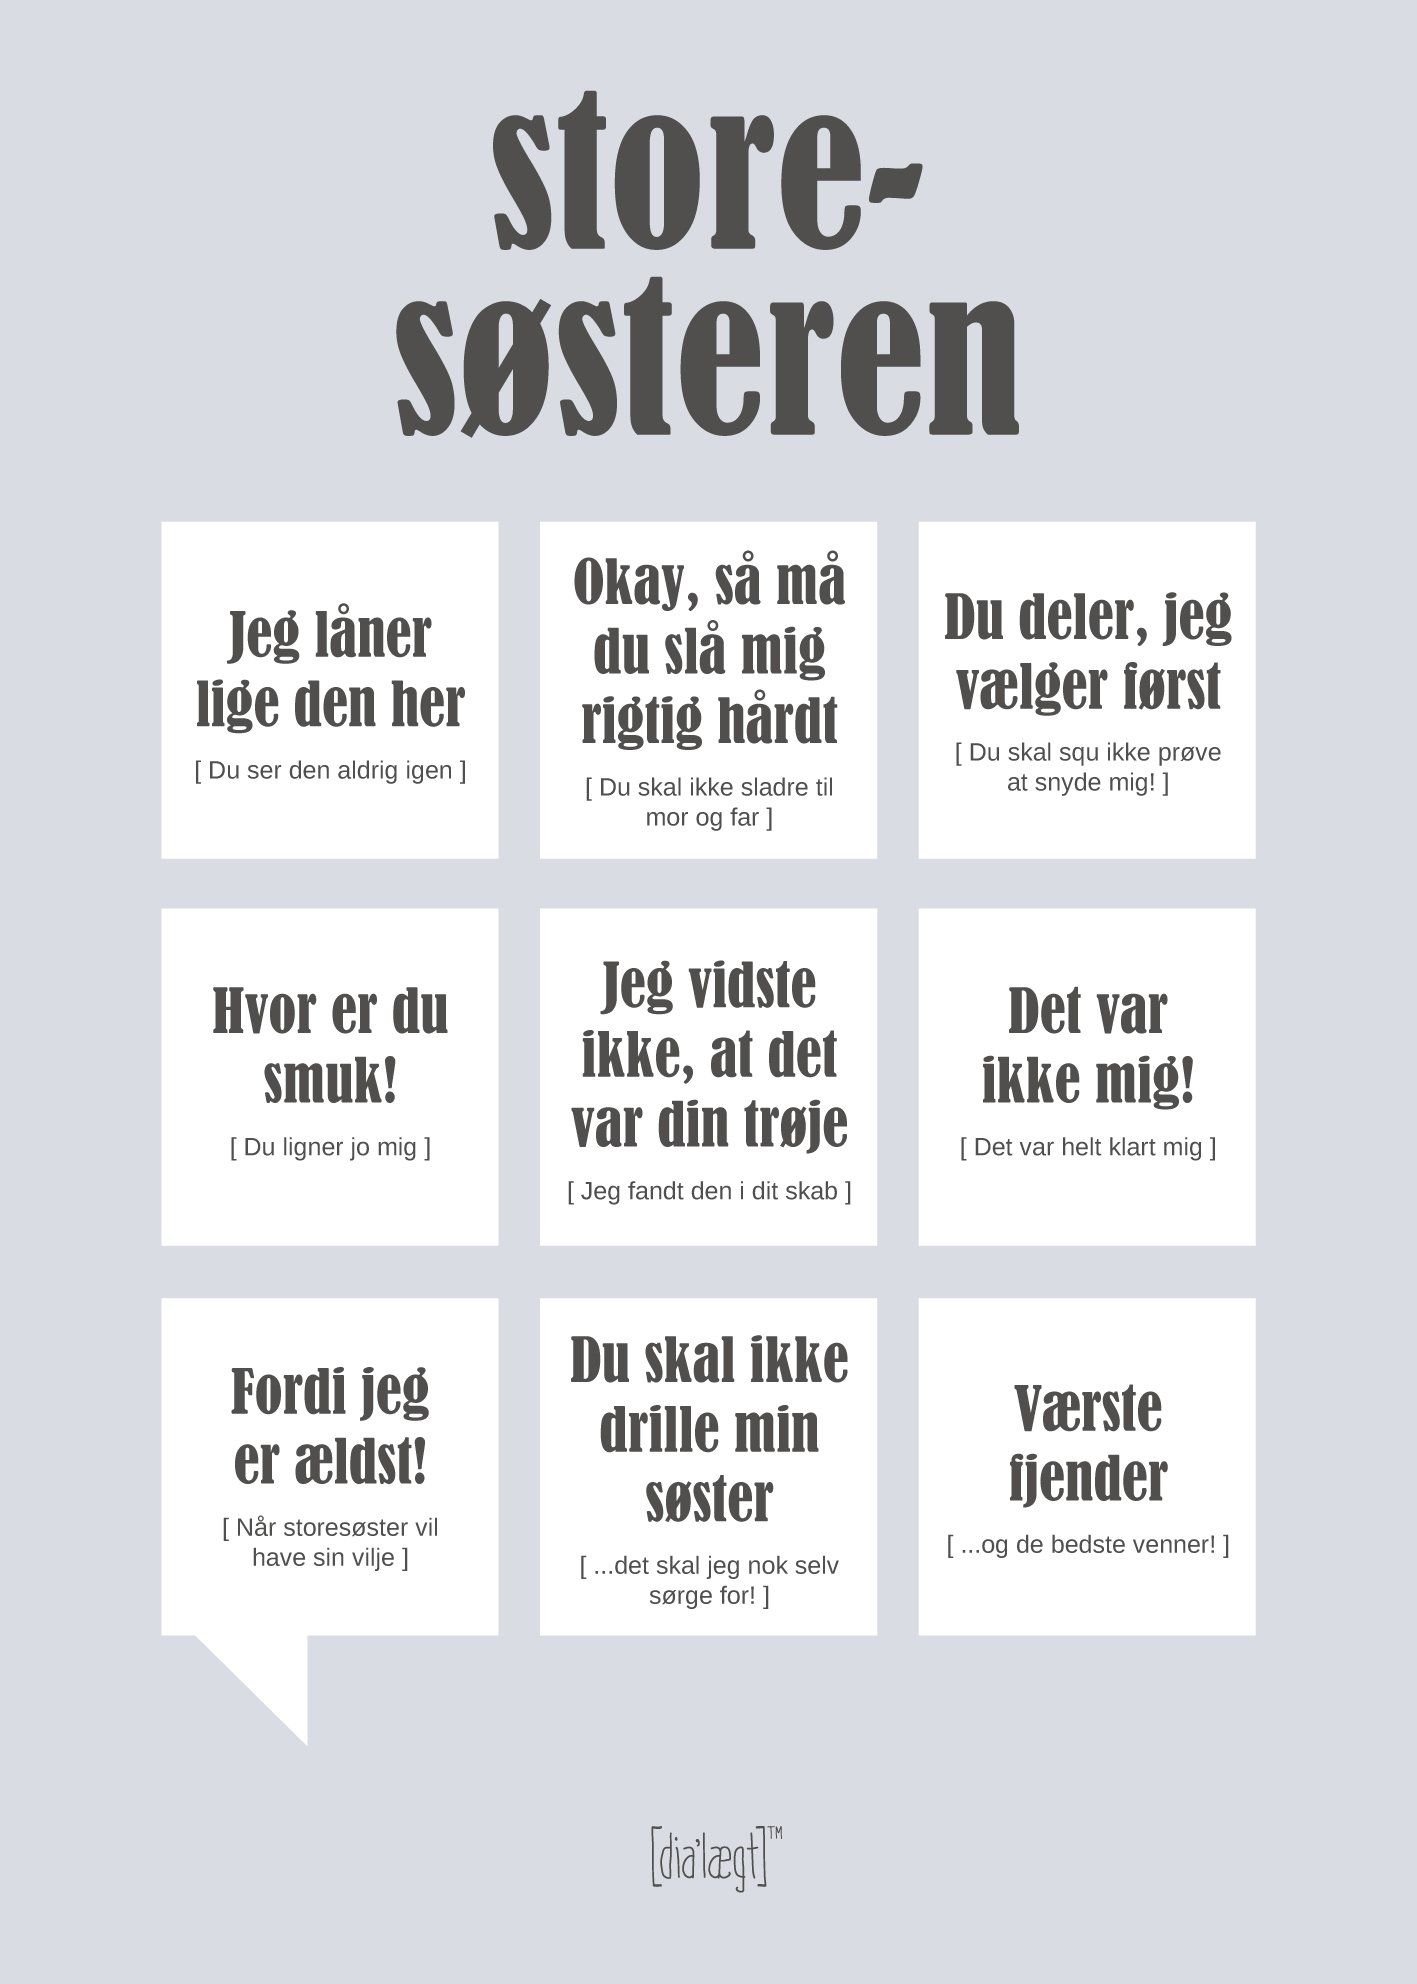 Storesosteren In 2020 Family Quotes Humor Funny Memes